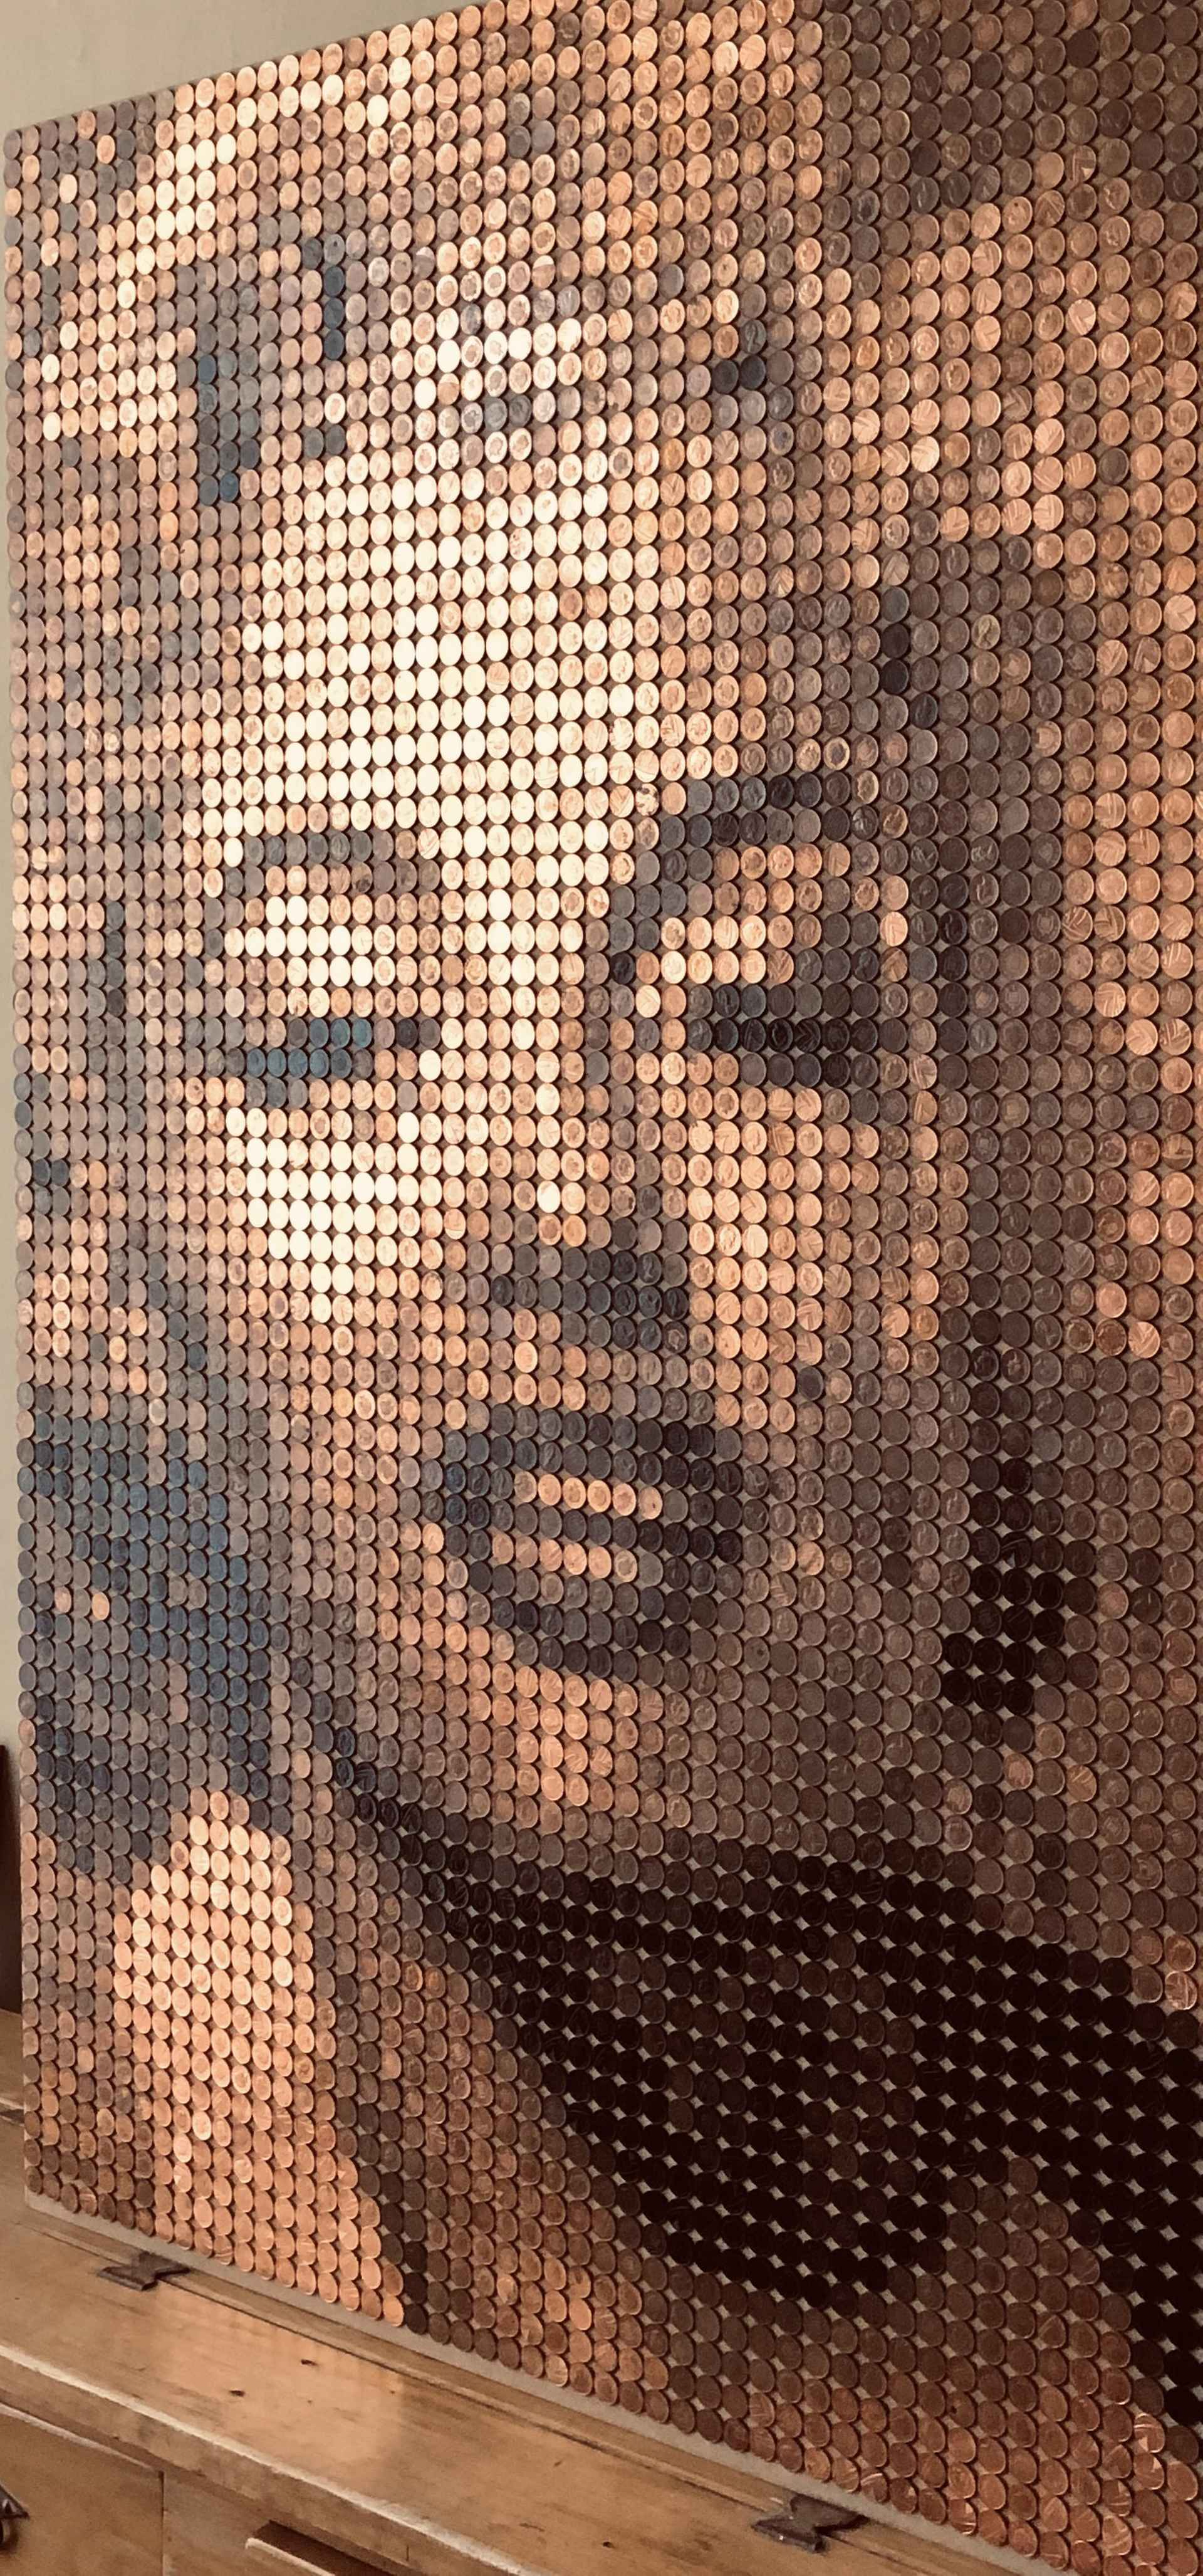 Marilyn (in coins) by Ed Chapman